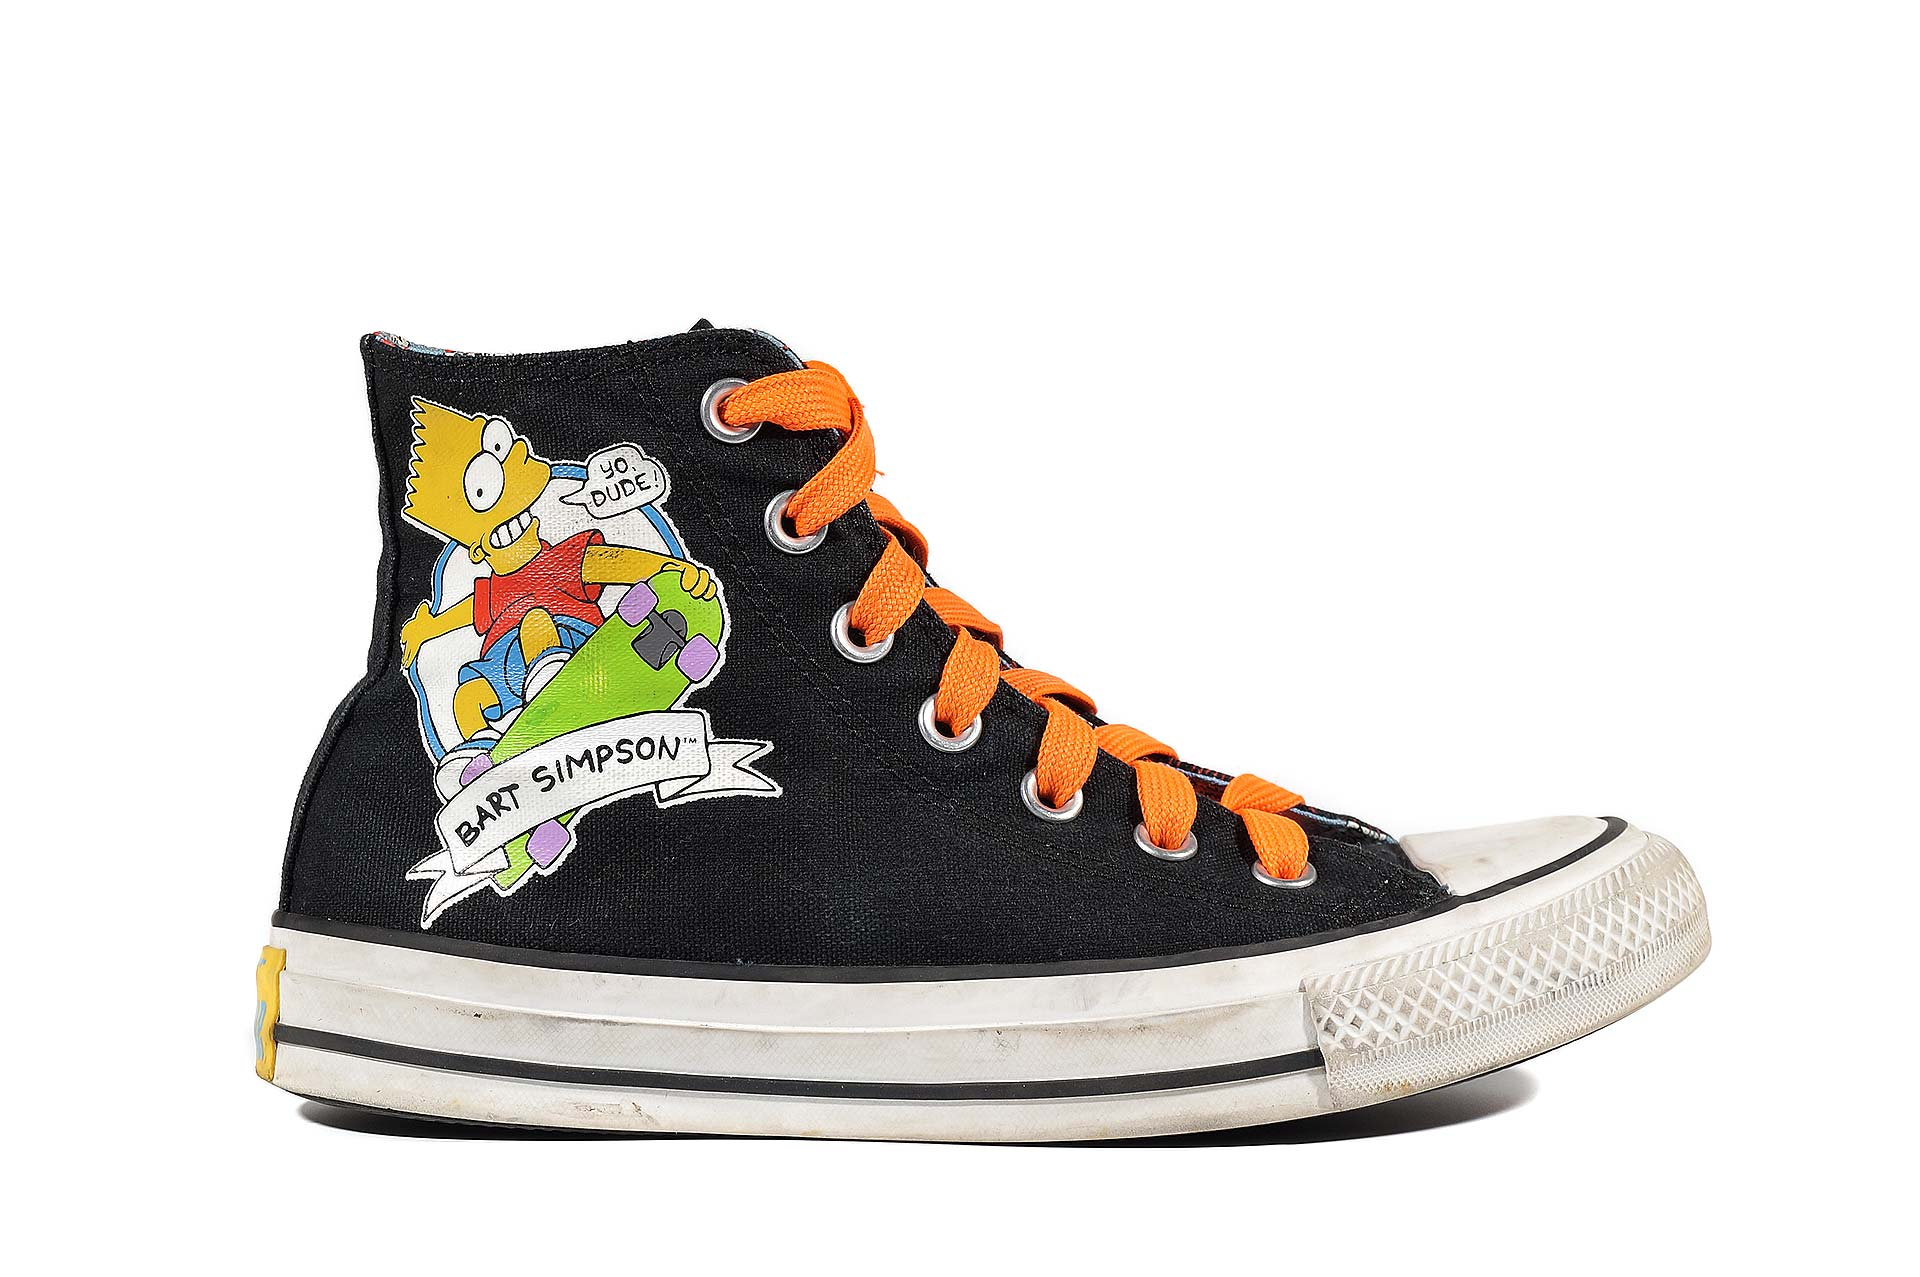 7d07afe56a36fb Converse The Simpsons Chuck Taylor All Star 146810 (00038-U) sneakers used  buy online shop vintageshoes.ru